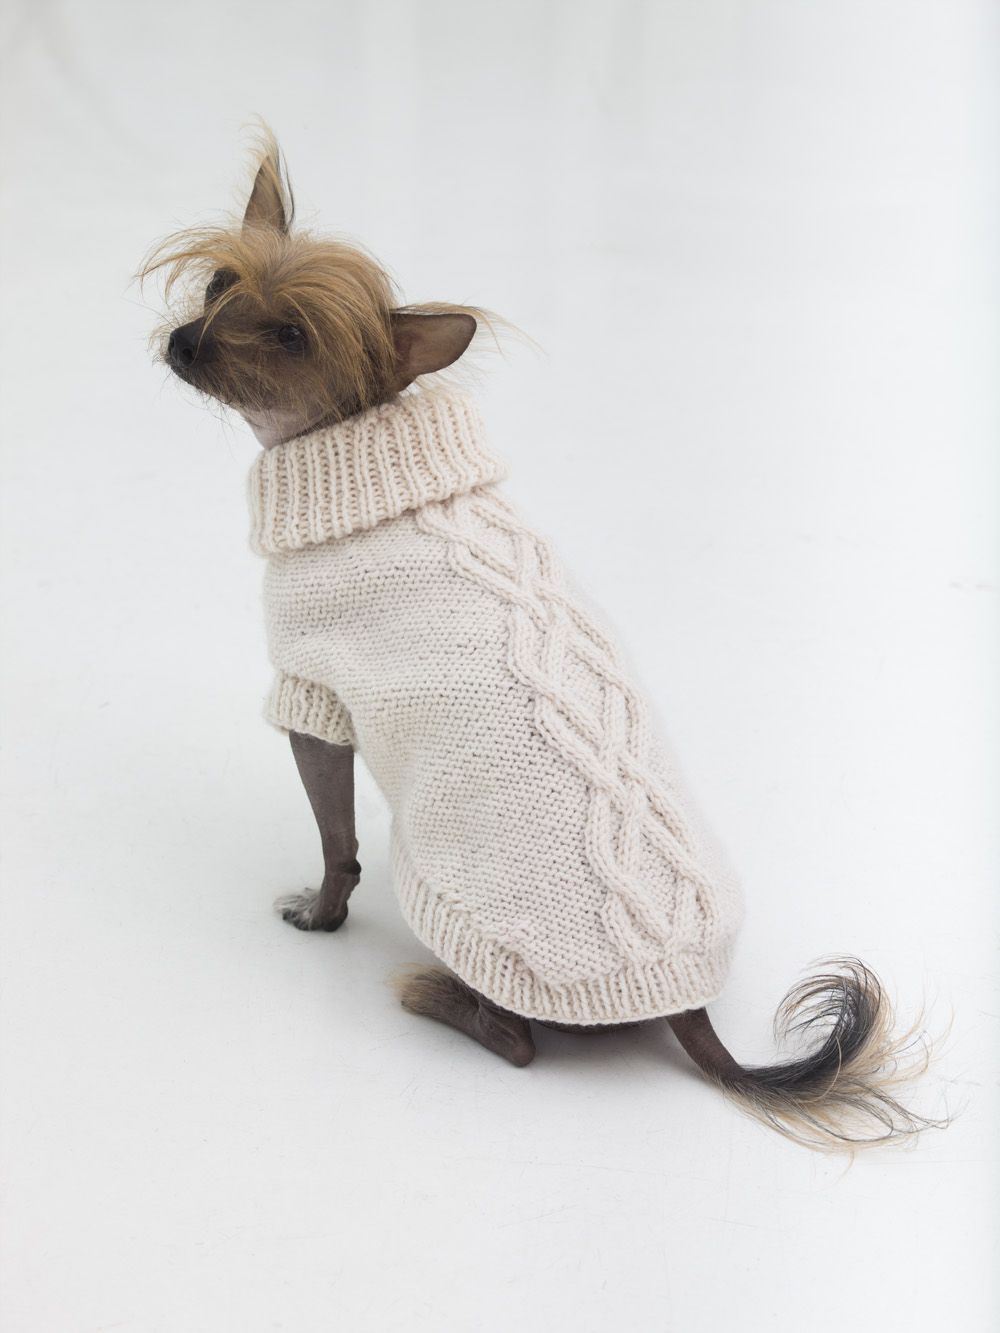 L32372ag 1 000 1 333 pixels patrons chles pinterest the knit prep dog sweater is a great gift for your favorite prancing puppy bankloansurffo Gallery